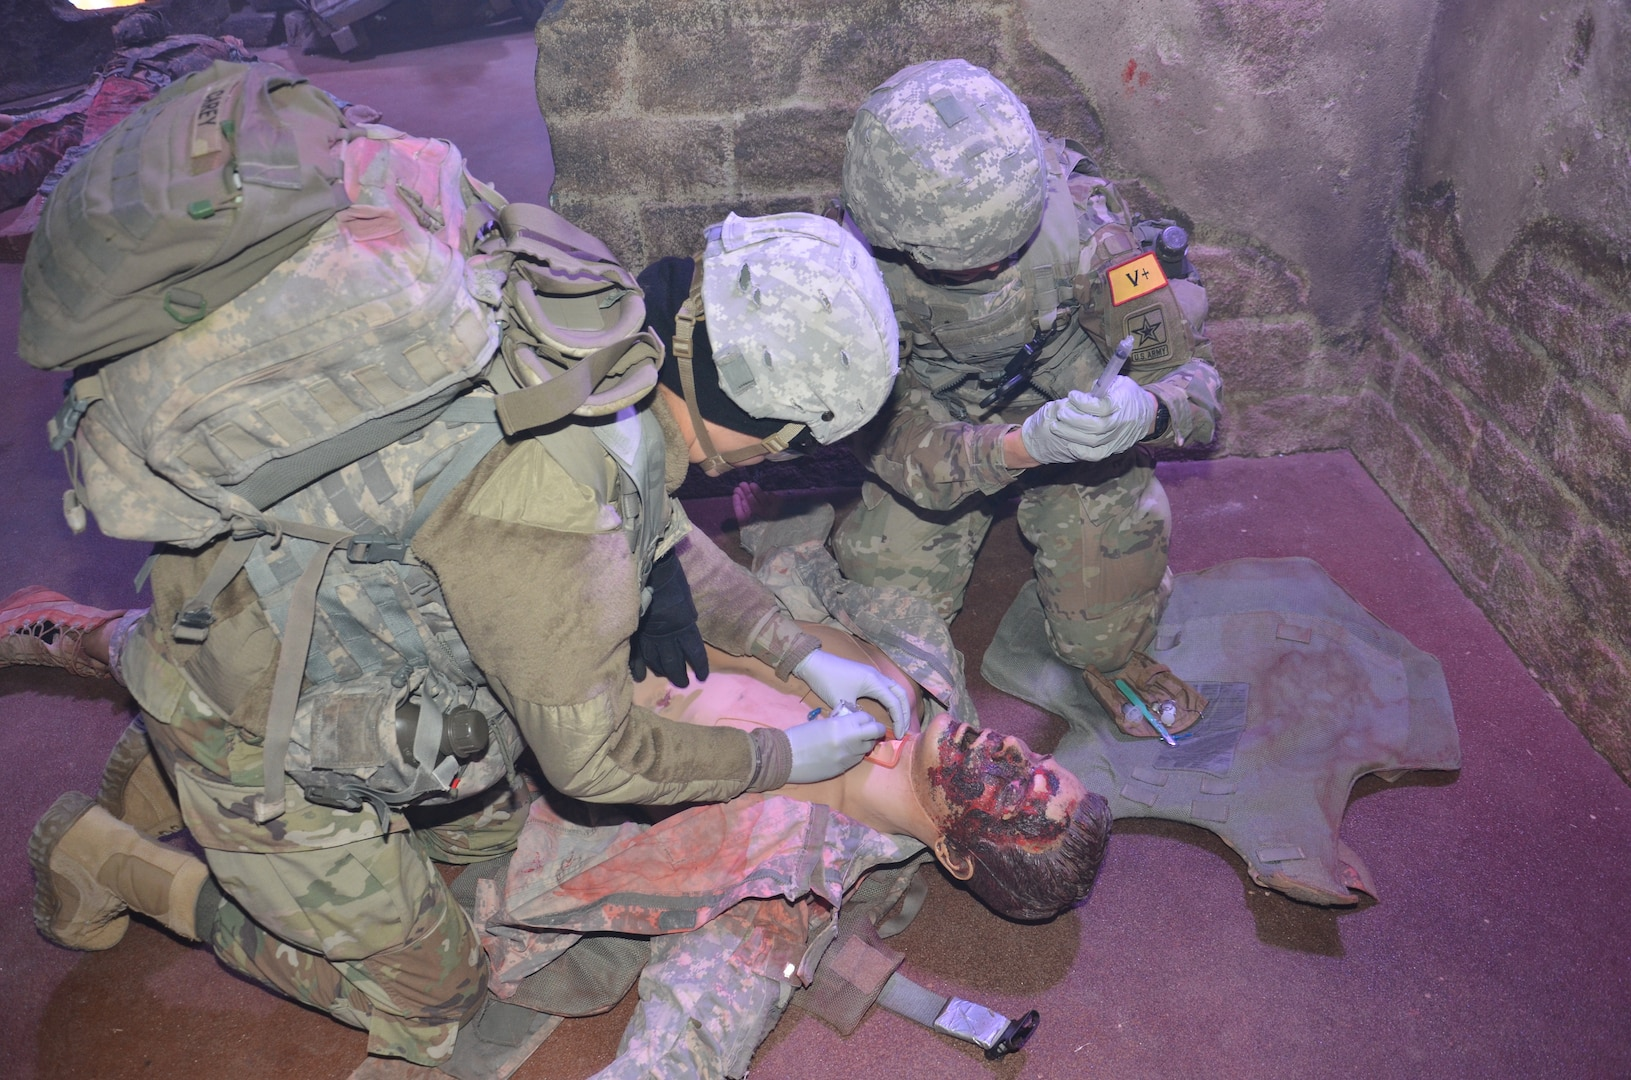 """Combat Medic Training program students at the Medical Education and Training Campus at Joint Base San Antonio-Fort Sam Houston conduct an emergency cricothyrotomy on a """"casualty"""" during simulation training. The """"wounded"""" manikin also presents with facial burns that were created with moulage techniques."""